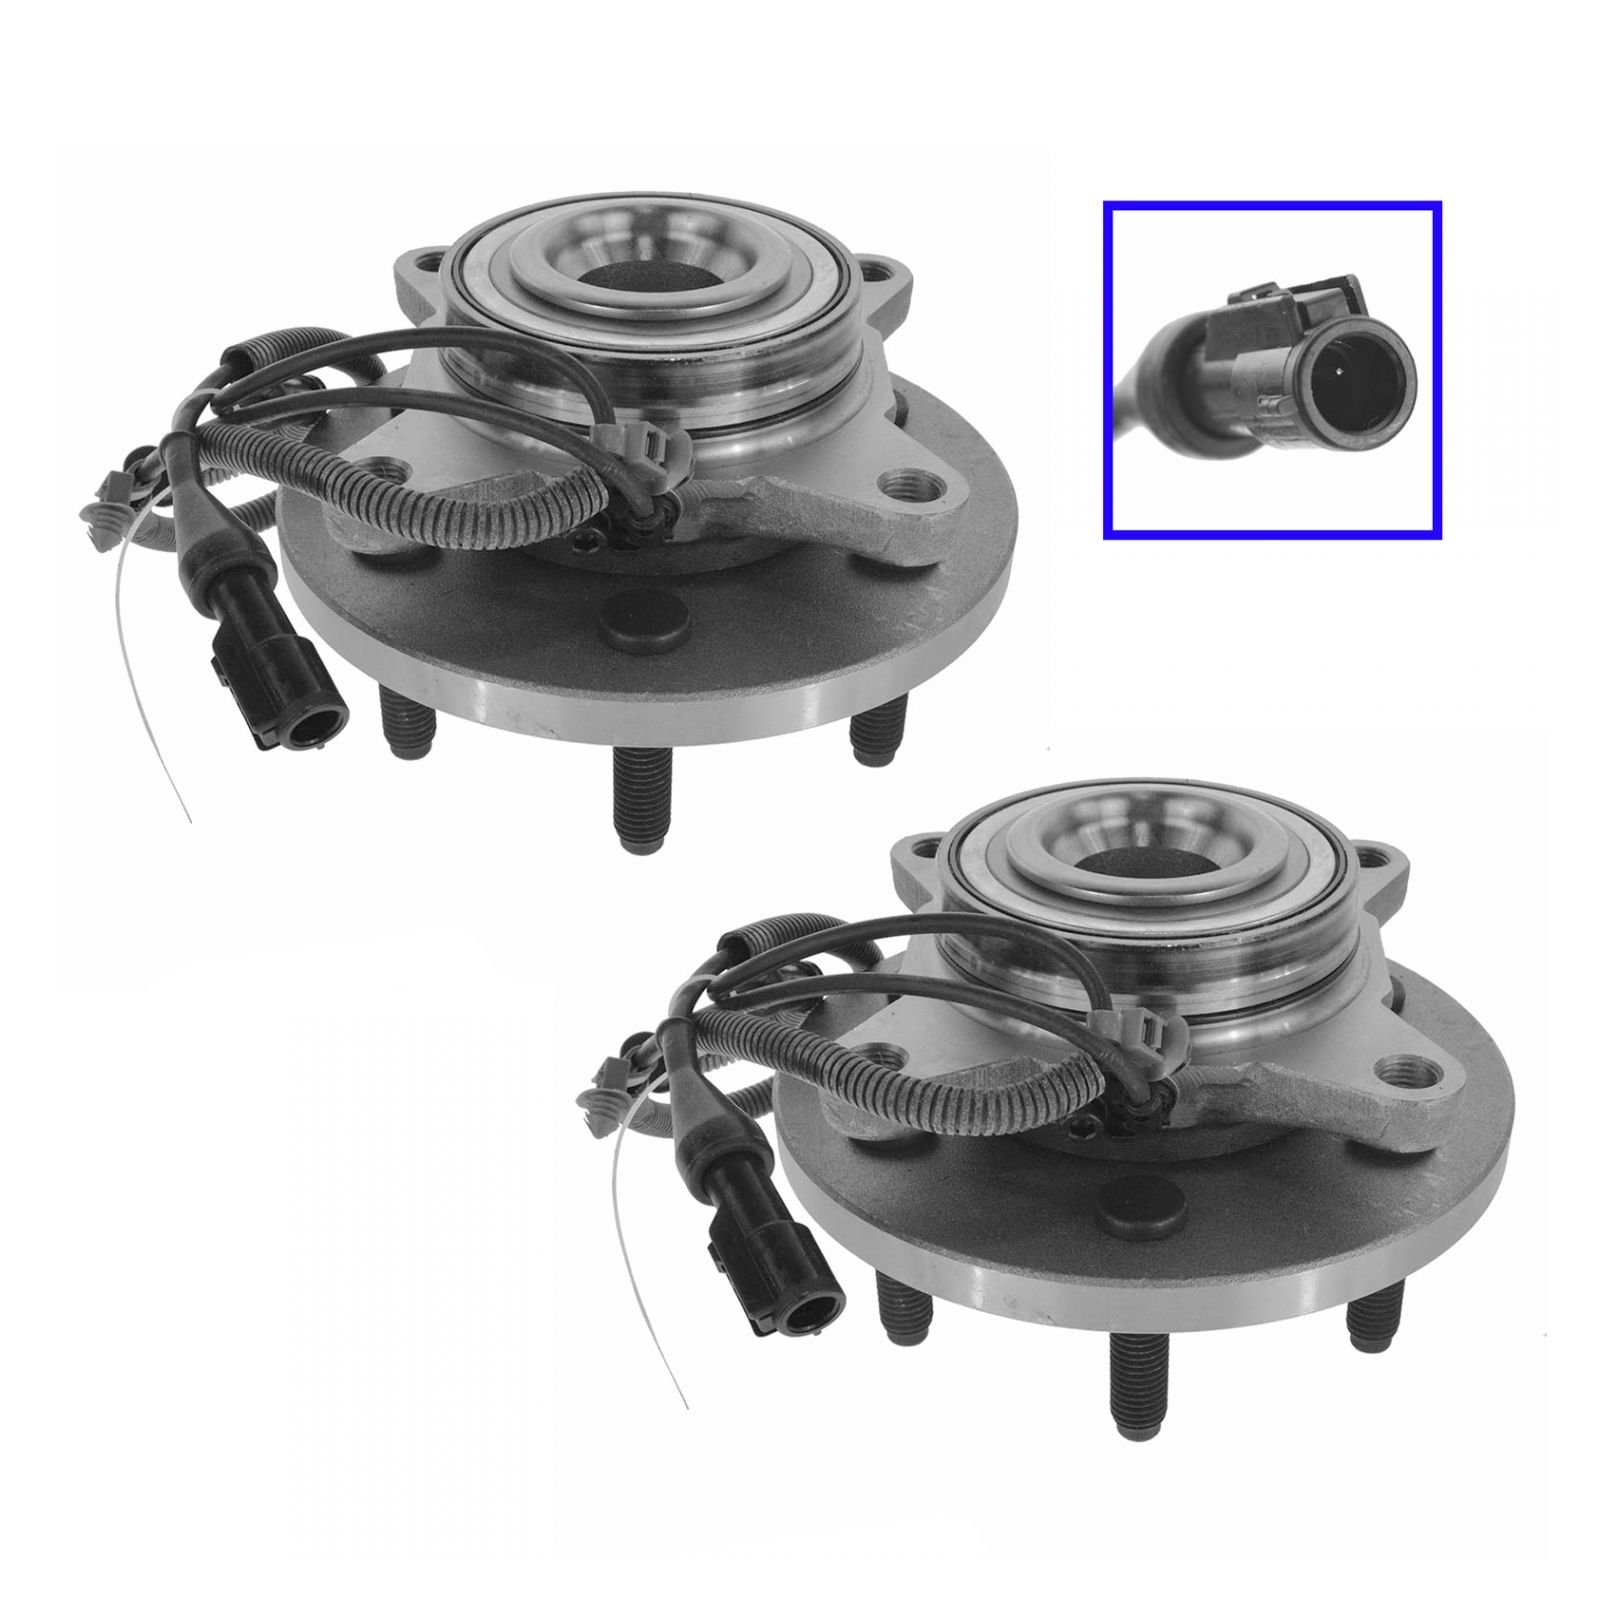 Wheel Hub & Bearing Front LH RH Pair for Expedition F150 Navigator w/ 2WD